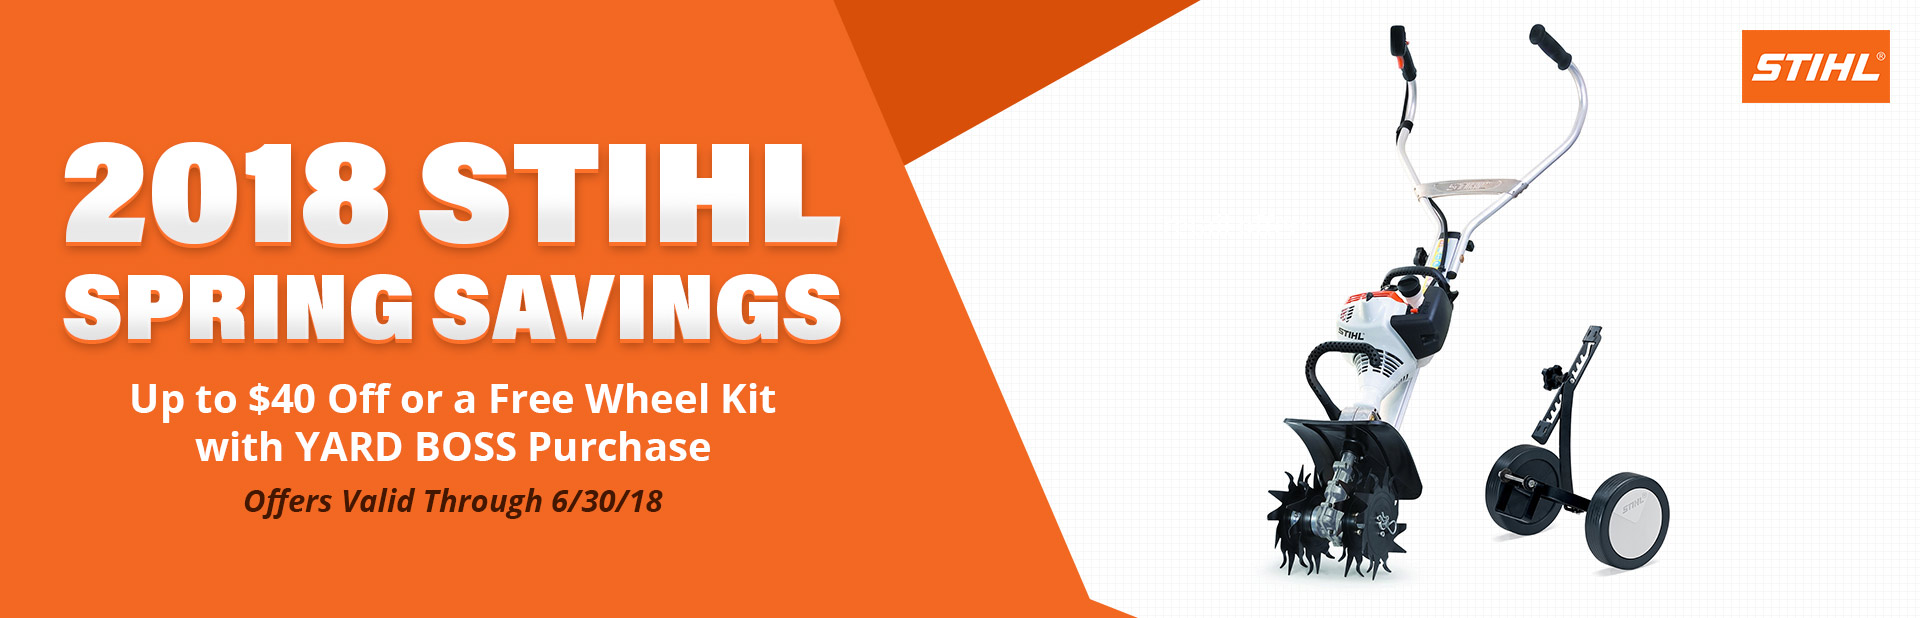 2018 STIHL Spring Savings: Get up to $40 off or a free wheel kit with the purchase of a YARD BOSS!